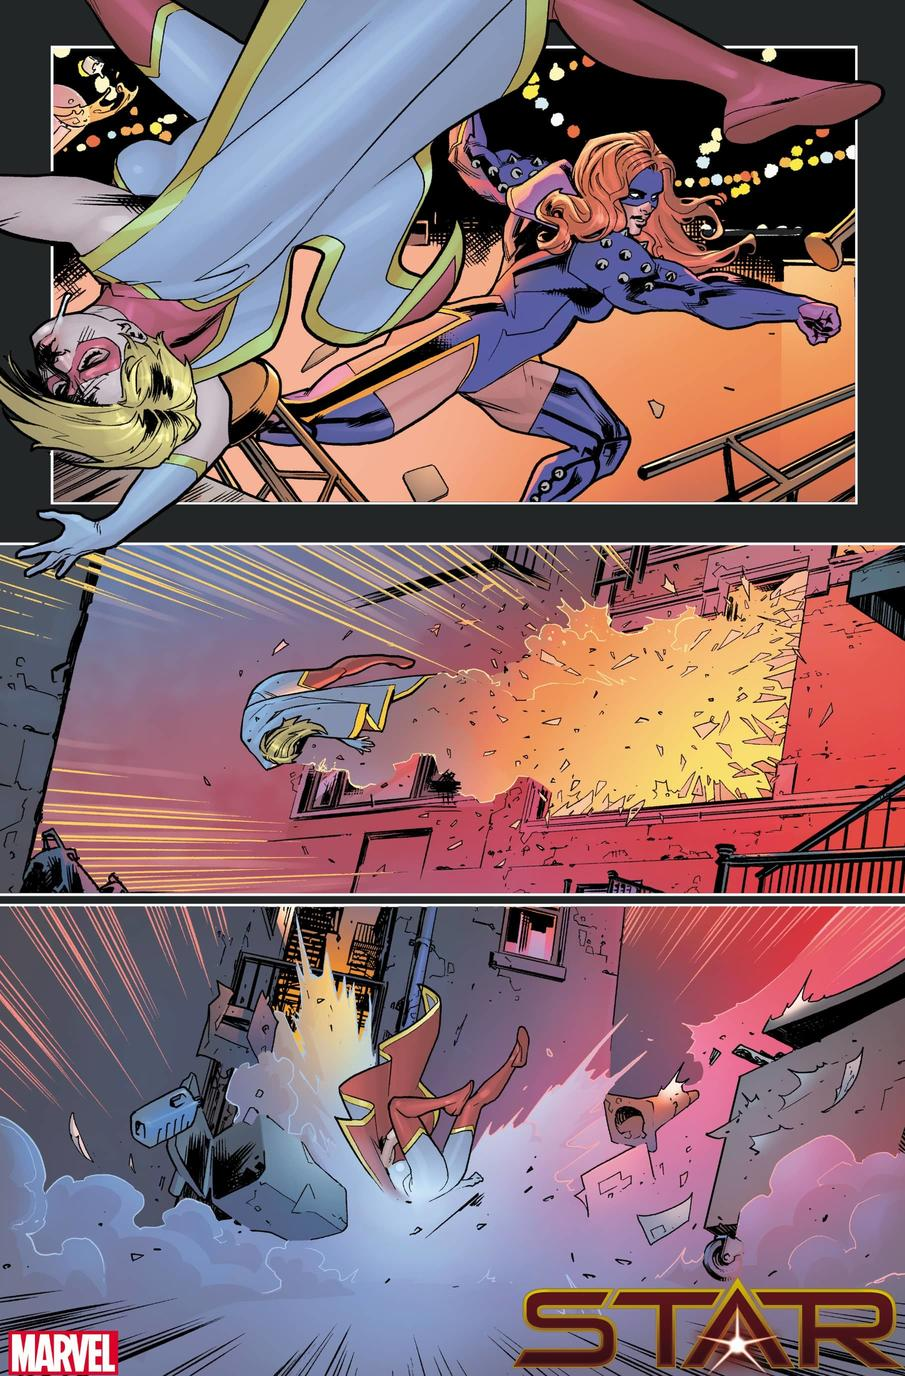 STAR #1 preview art by Javier Pina and Filipe Andrade with colors by Jesus Aburtov